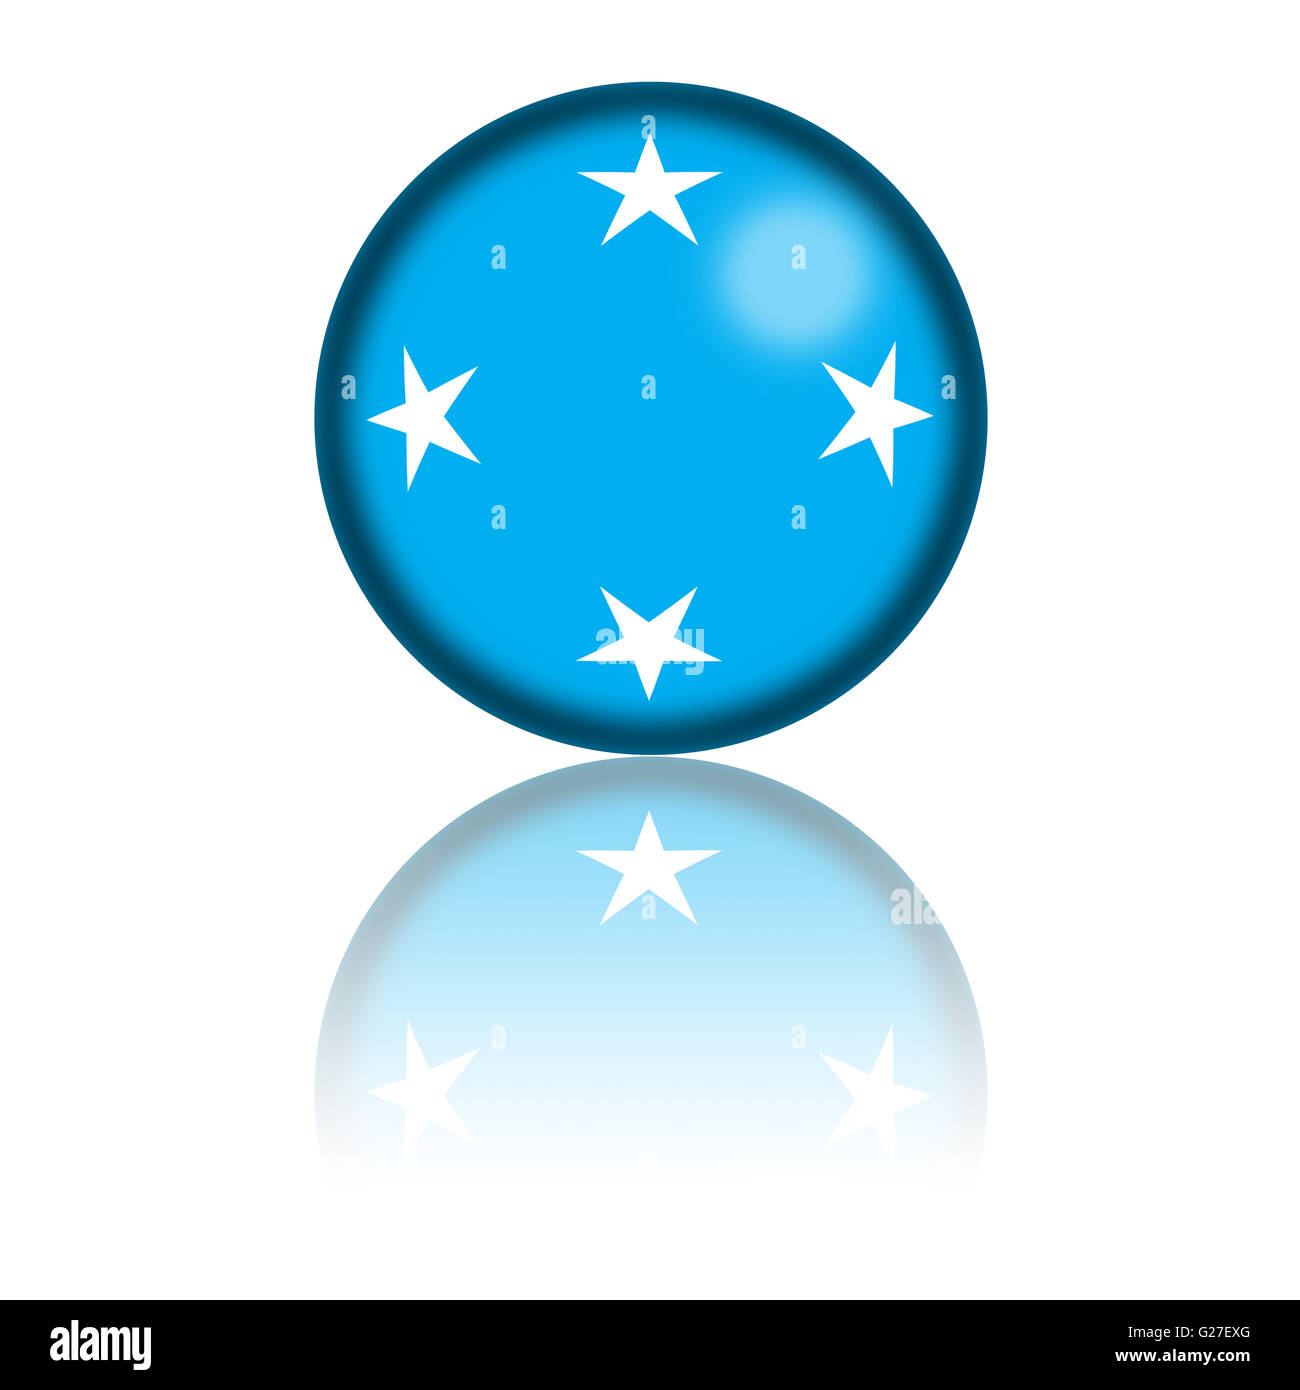 3D sphere or badge of Micronesia flag with reflection at bottom. - Stock Image